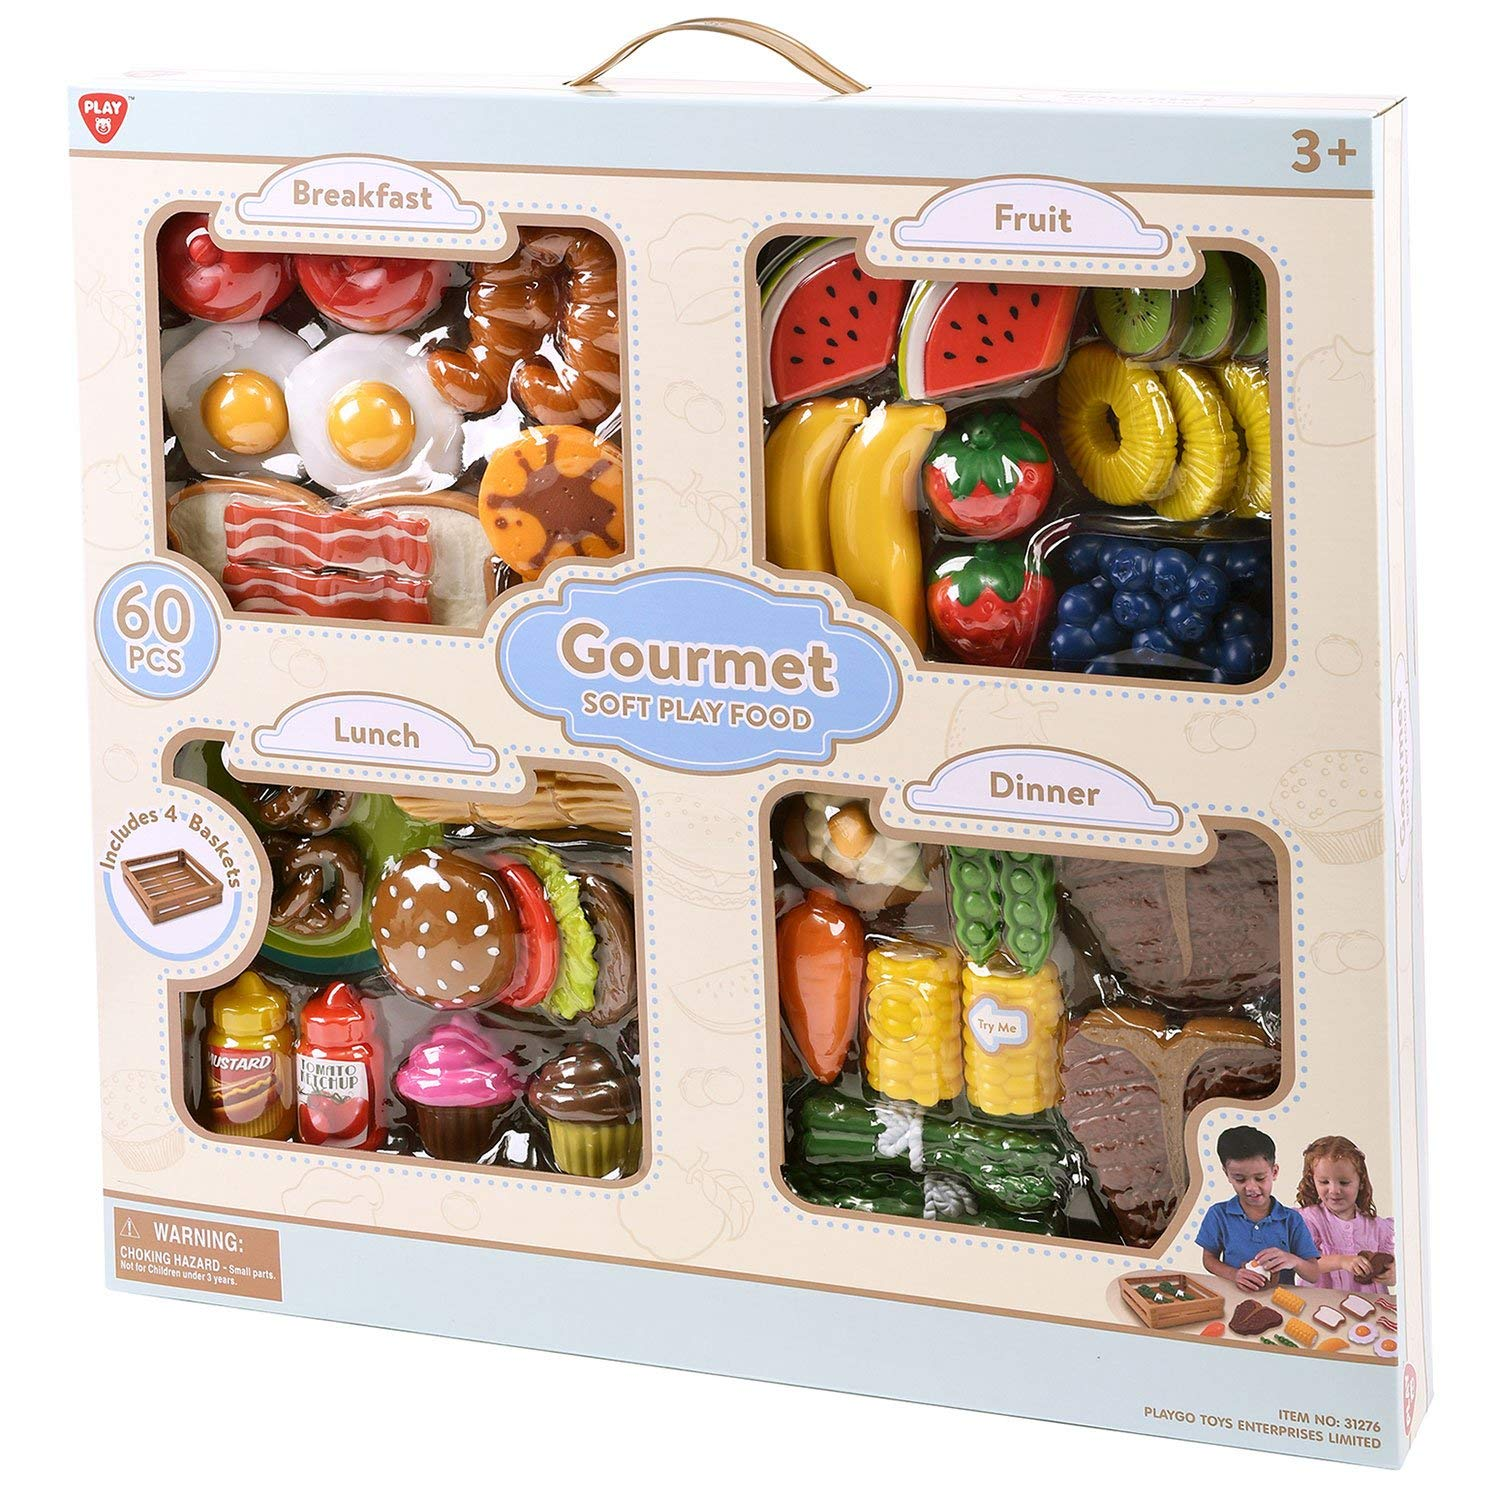 PlayGo Toys - Gourmet Soft Play Food - Breakfast, Lunch, Dinner, and Fruit - Includes 4 Baskets!